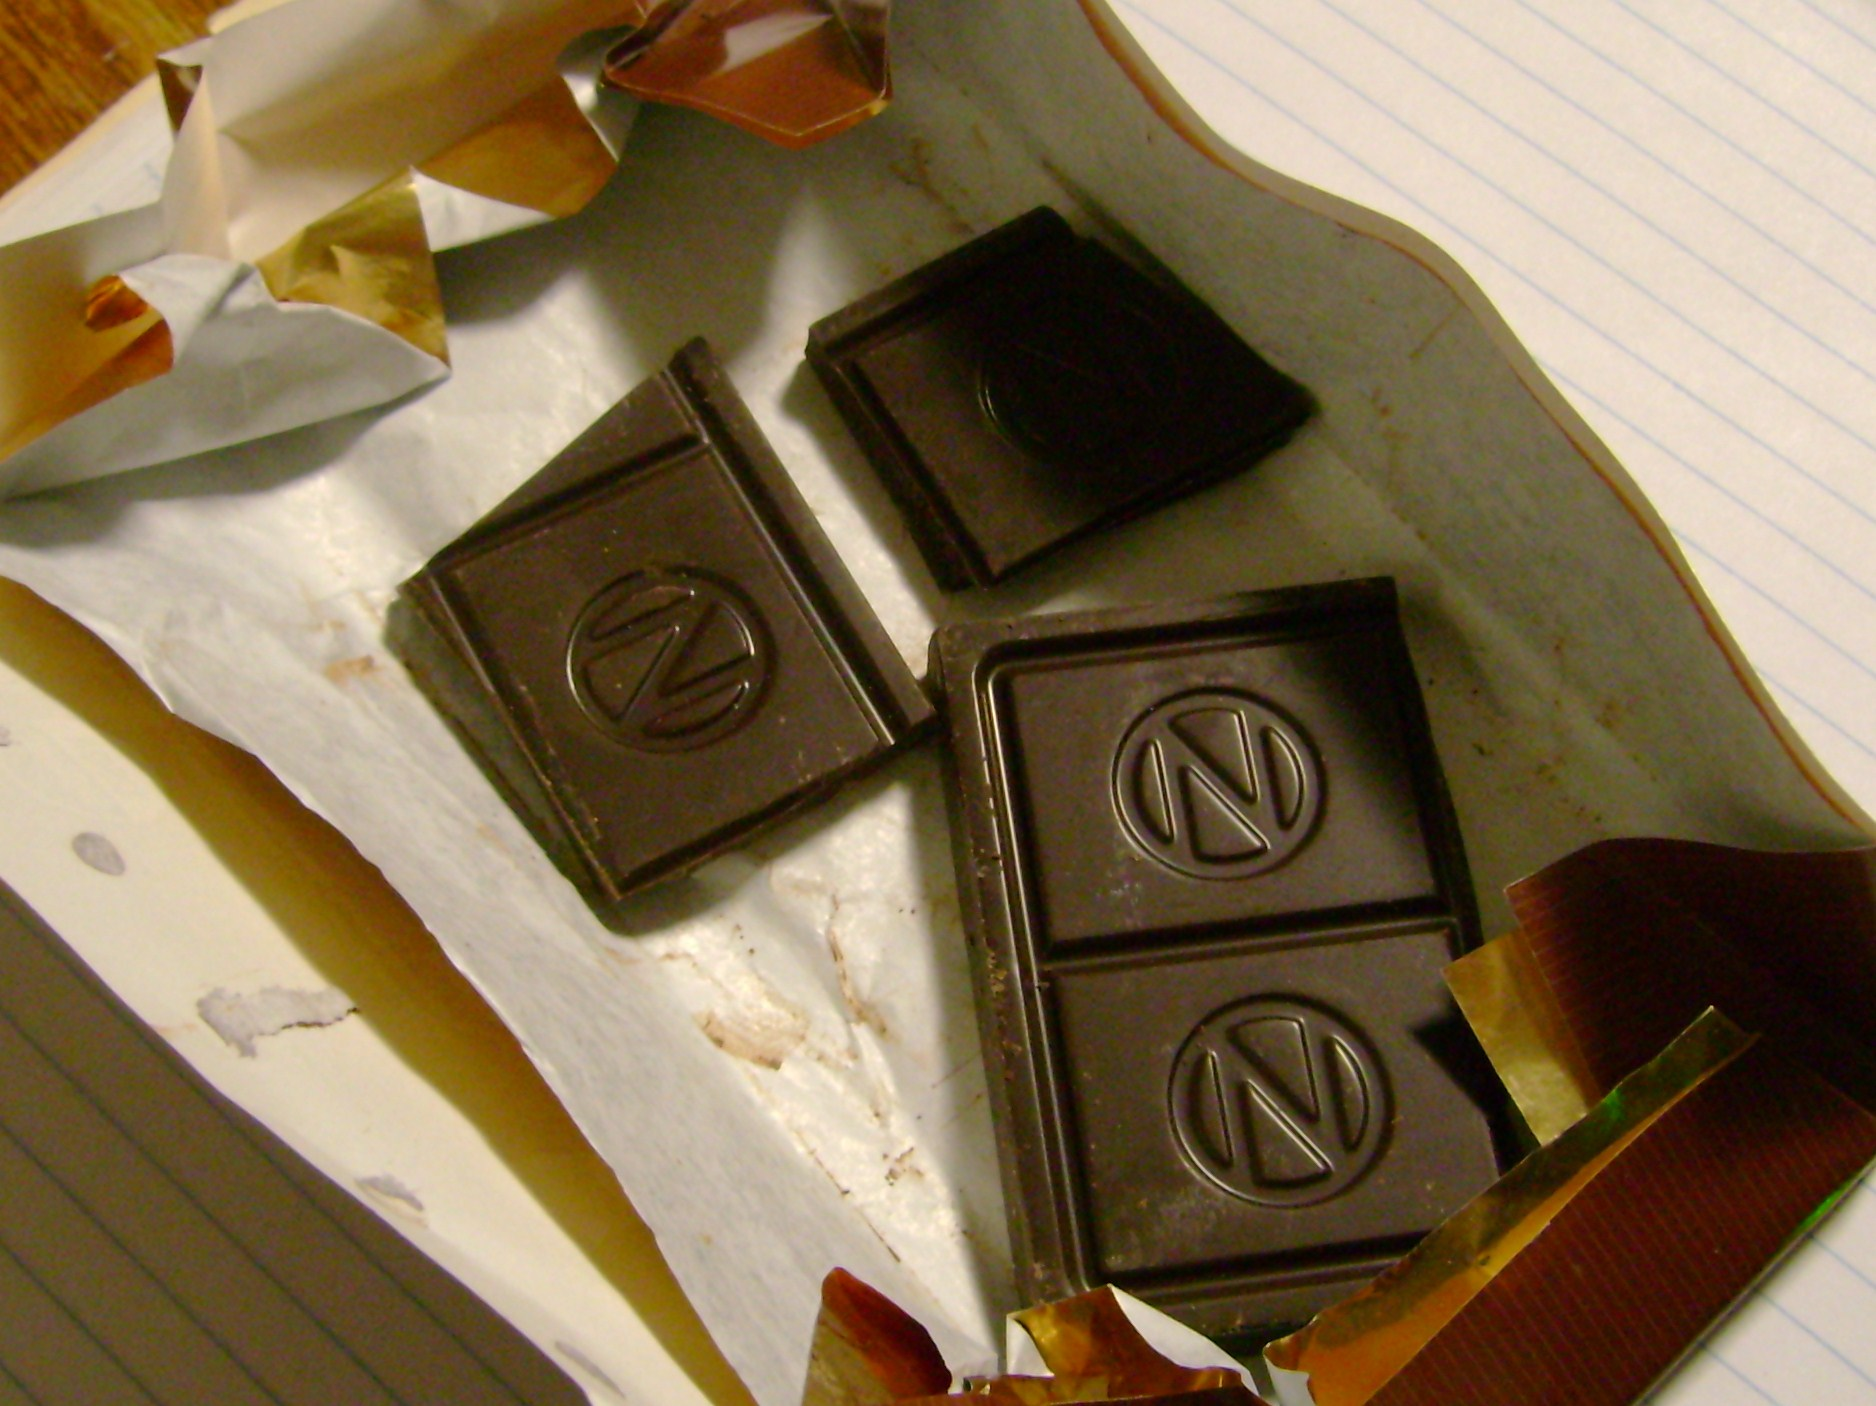 Newman's Own Organics' Super Dark Chocolate